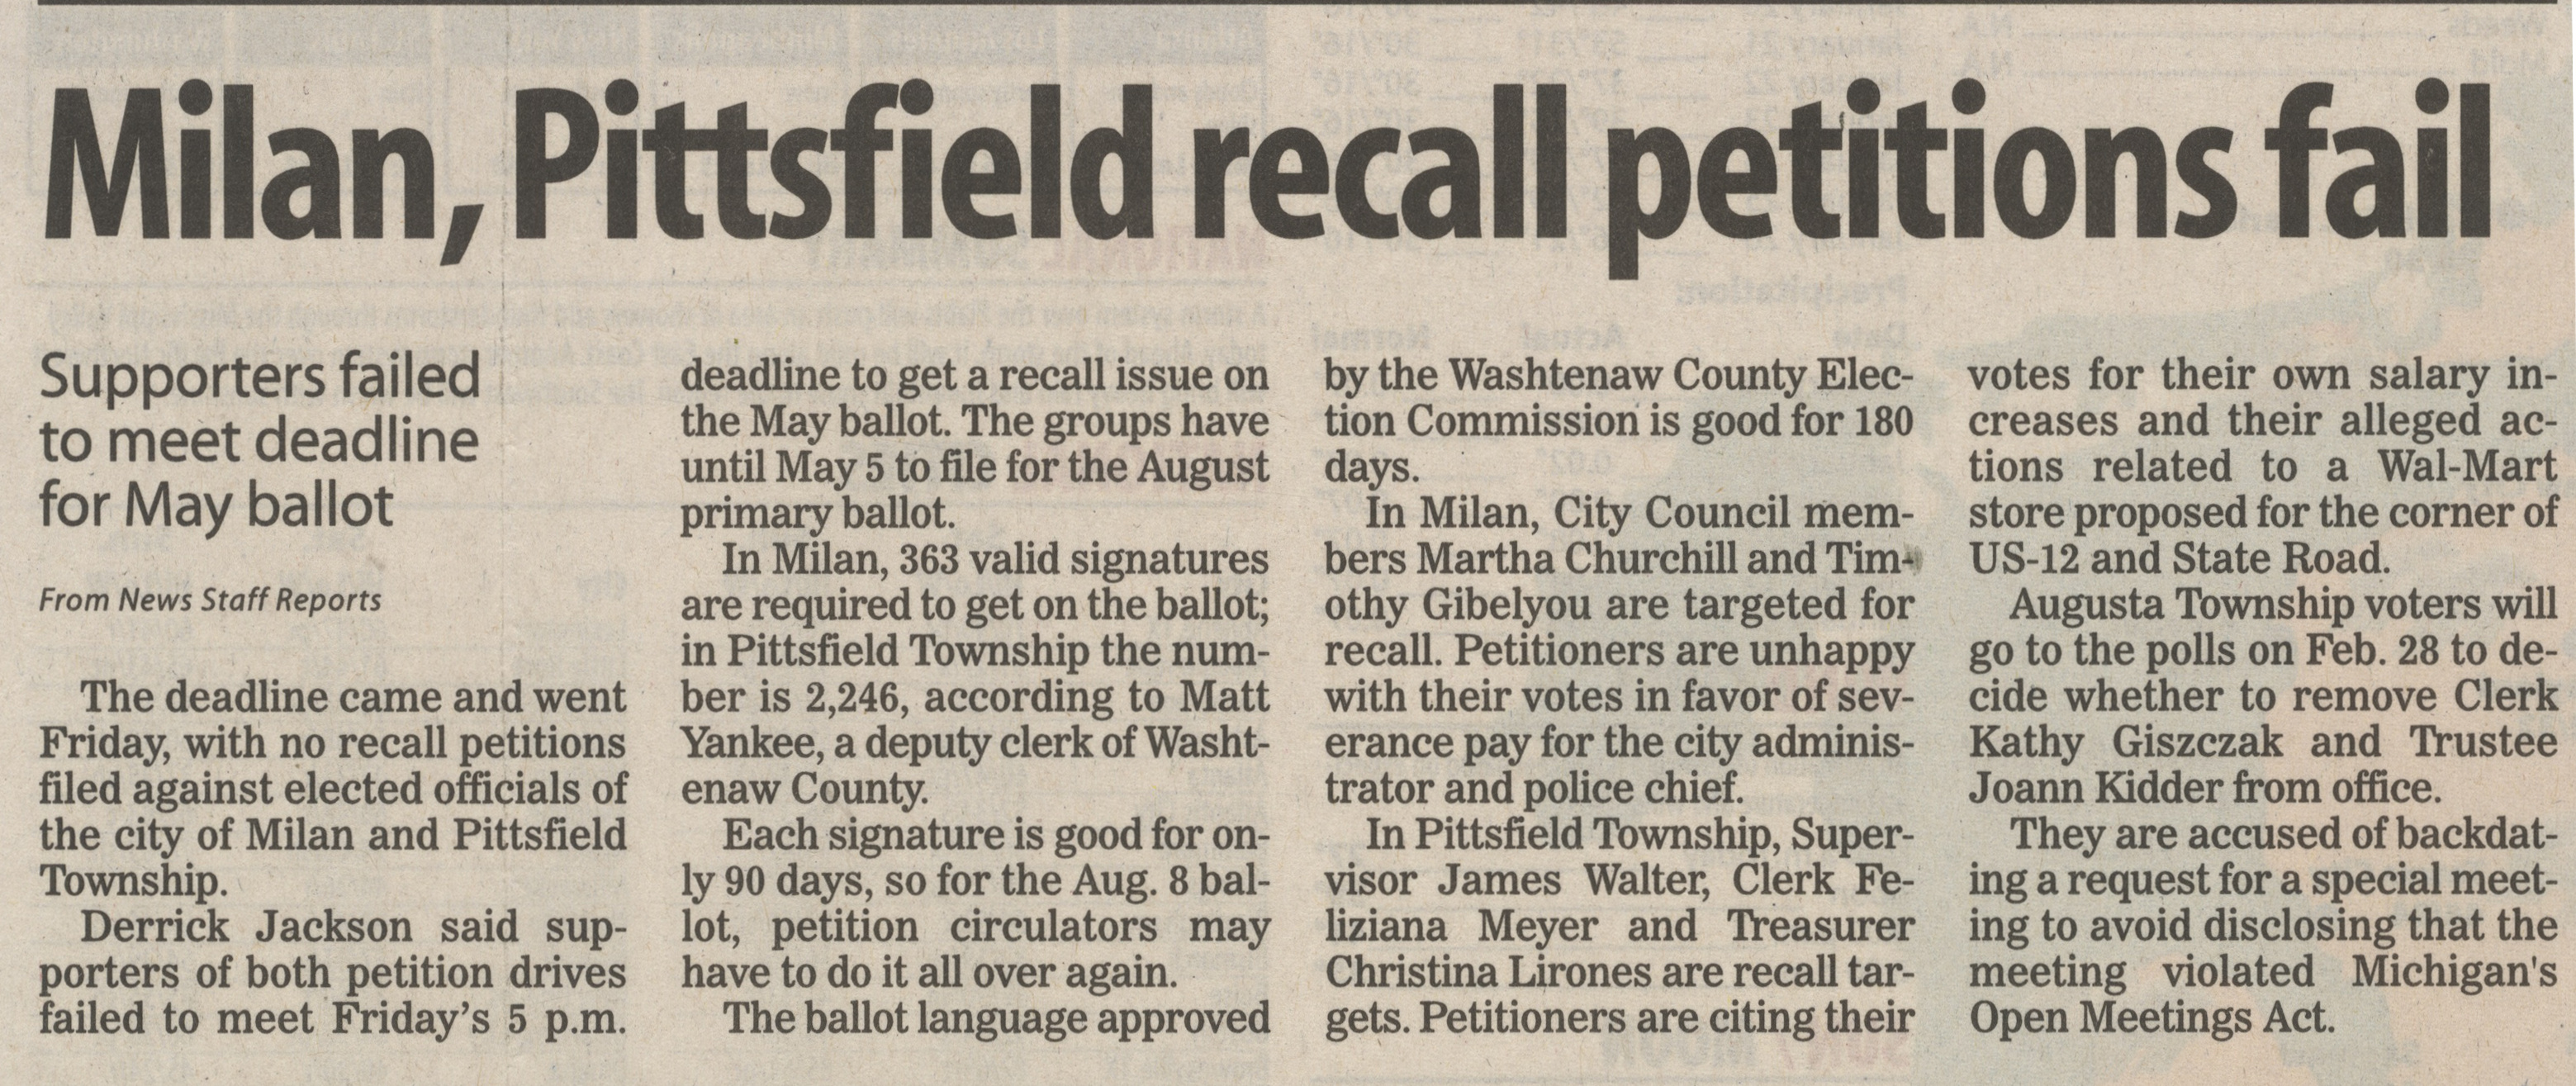 Milan, Pittsfield Recall Pettions Fail image